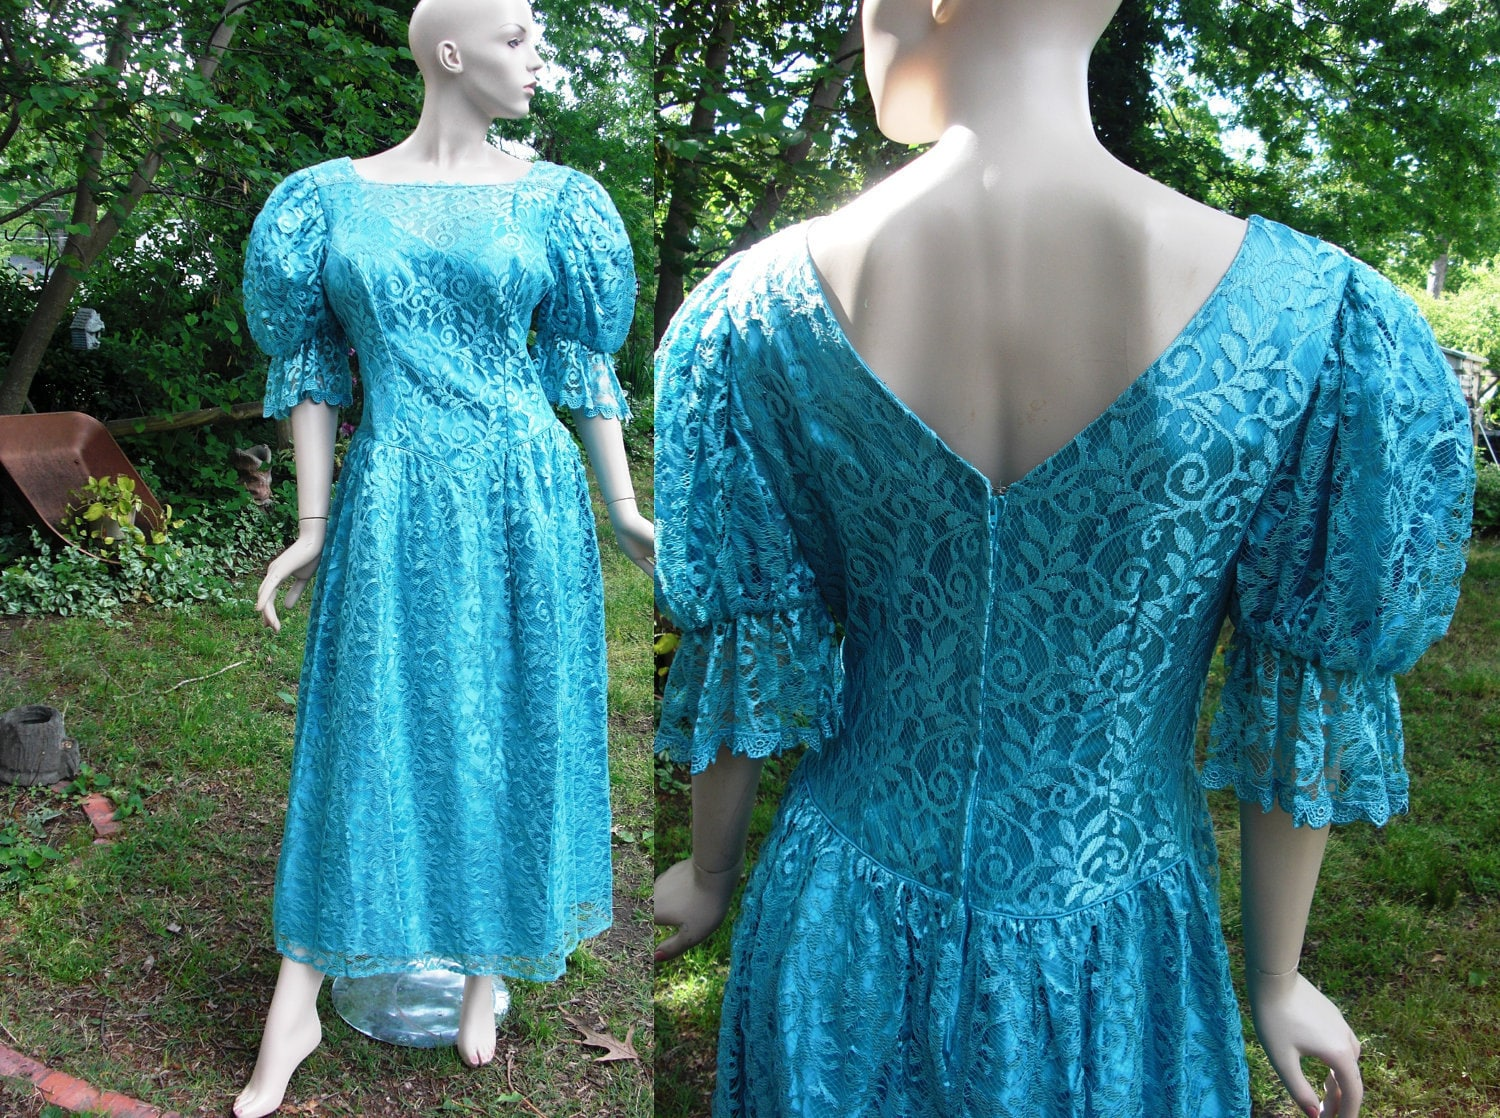 Plus Size 80's Prom Dress in Turquoise with Lace Overay by | 1500 x 1118 jpeg 580kB